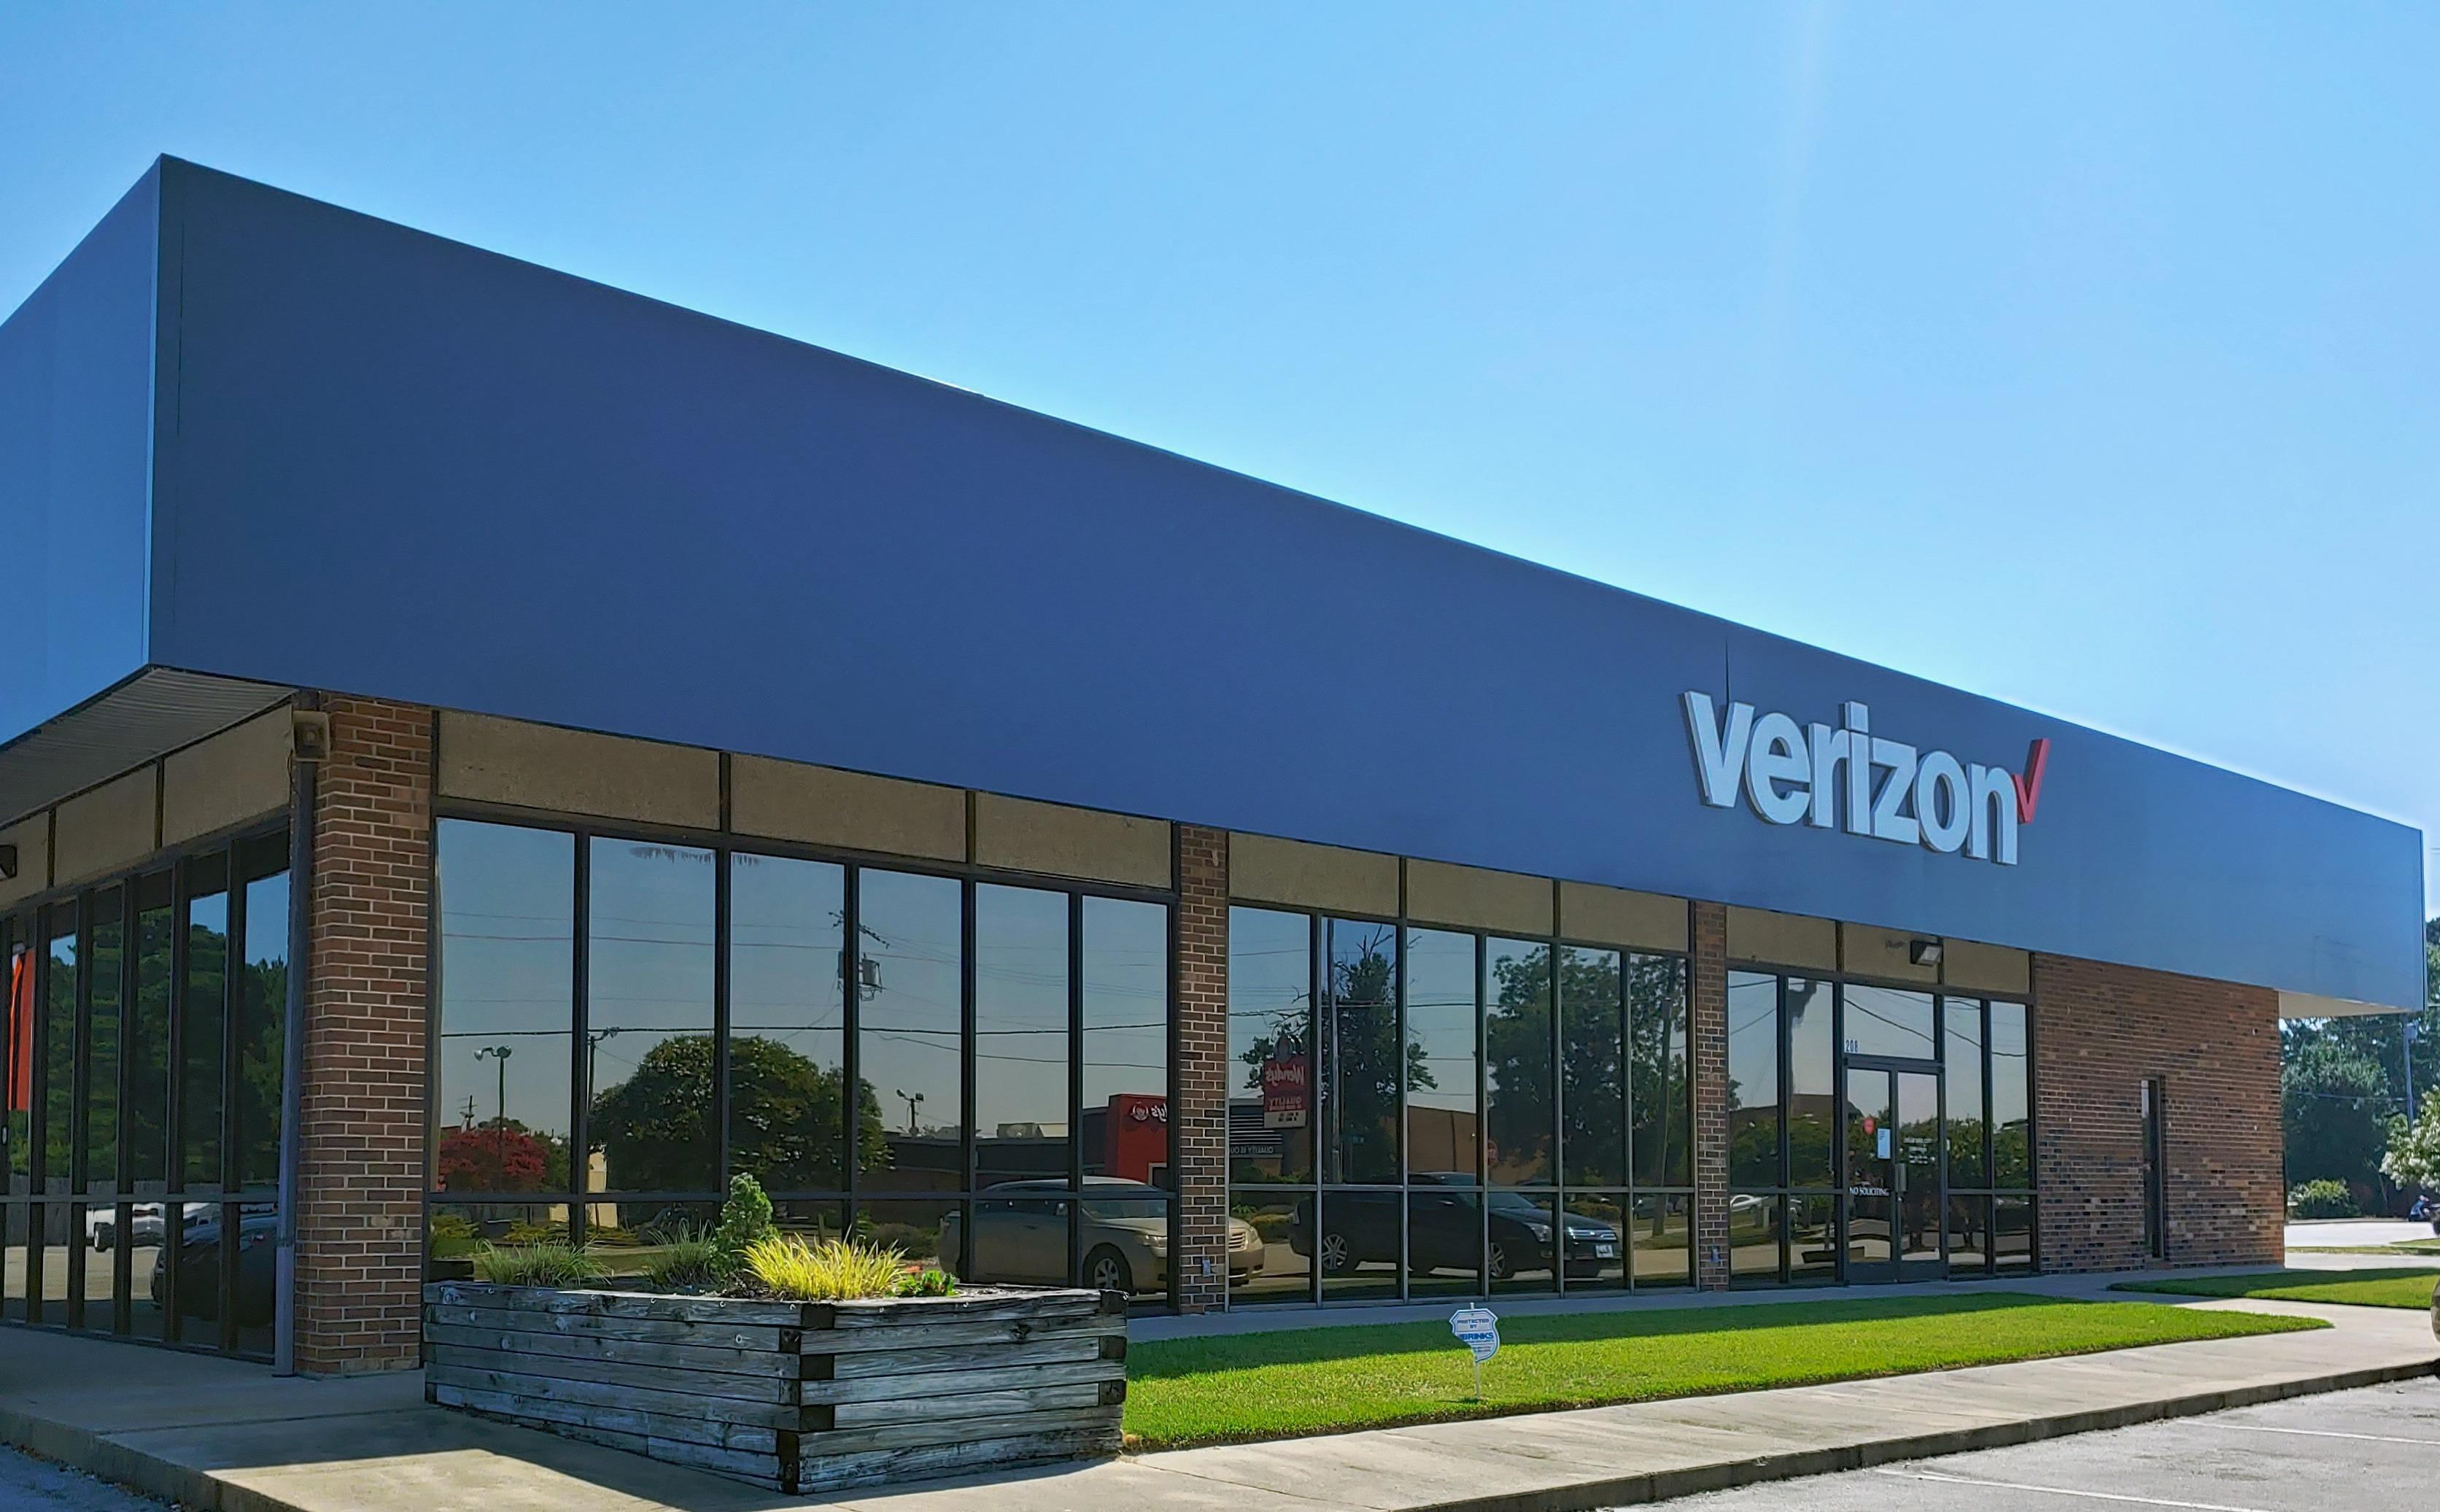 Verizon 1208 W 15th St, Washington